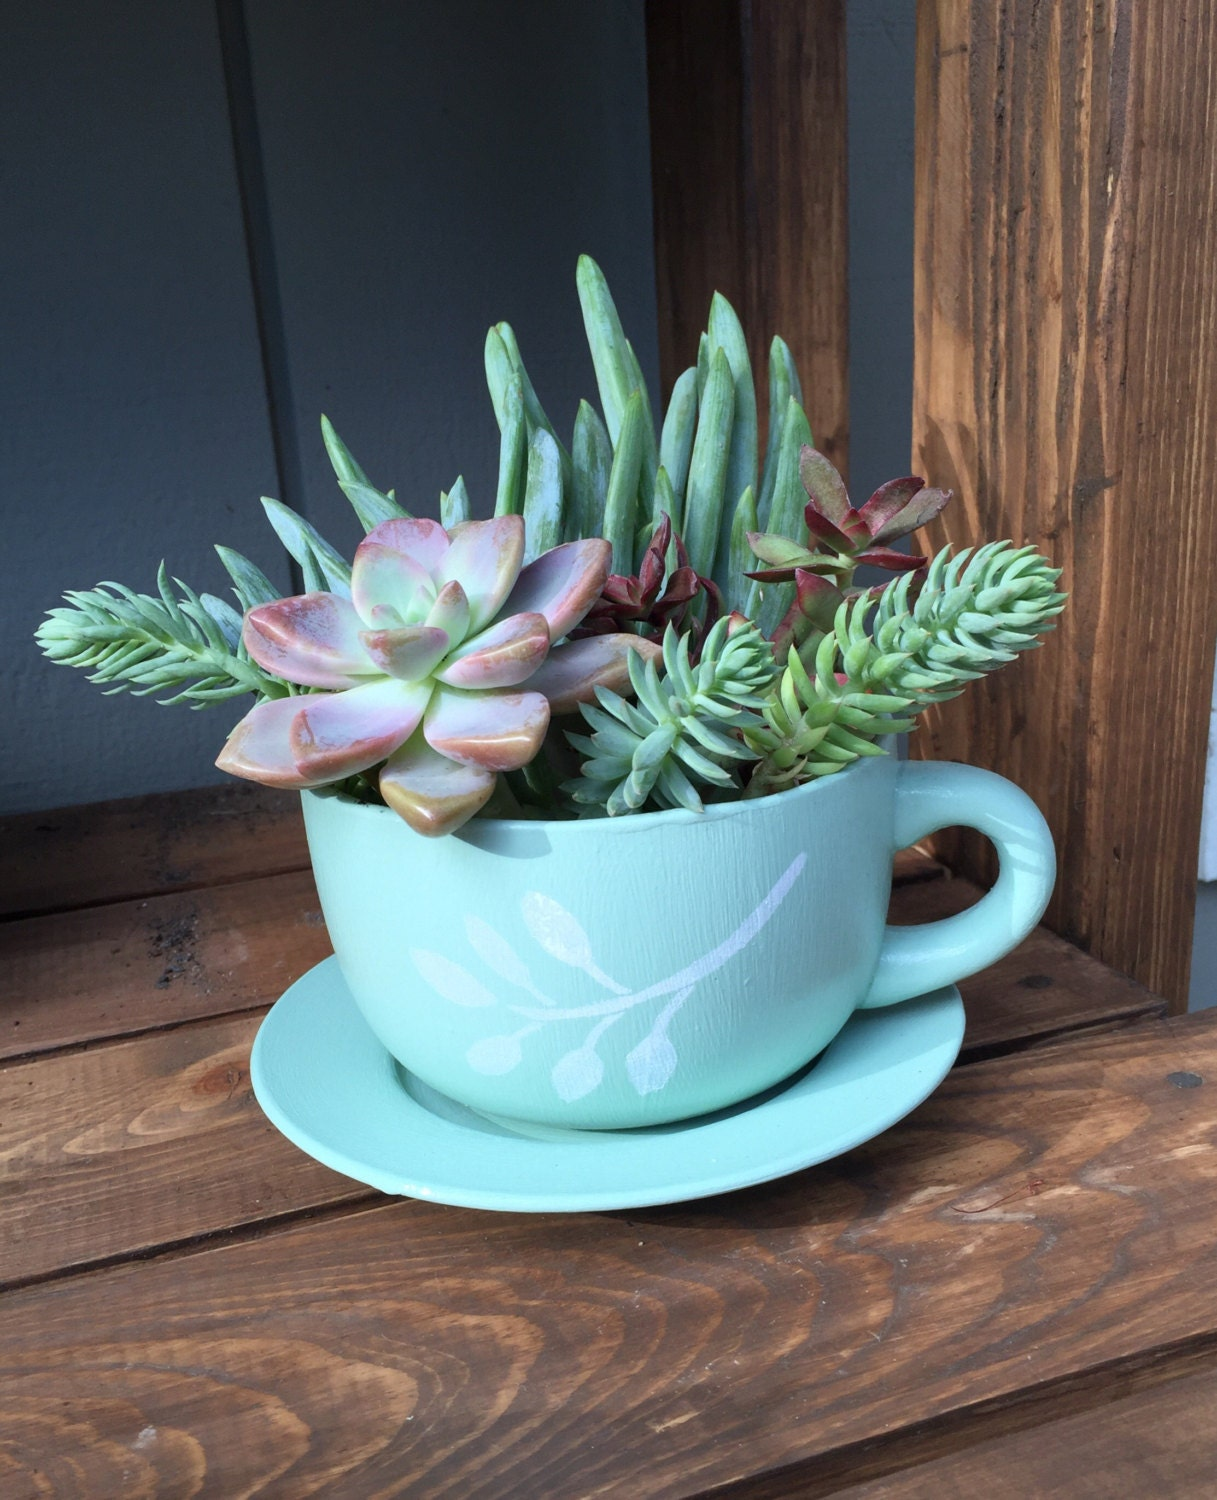 Custom Ceramic Tea Cup And Saucer Planter With Stenciled